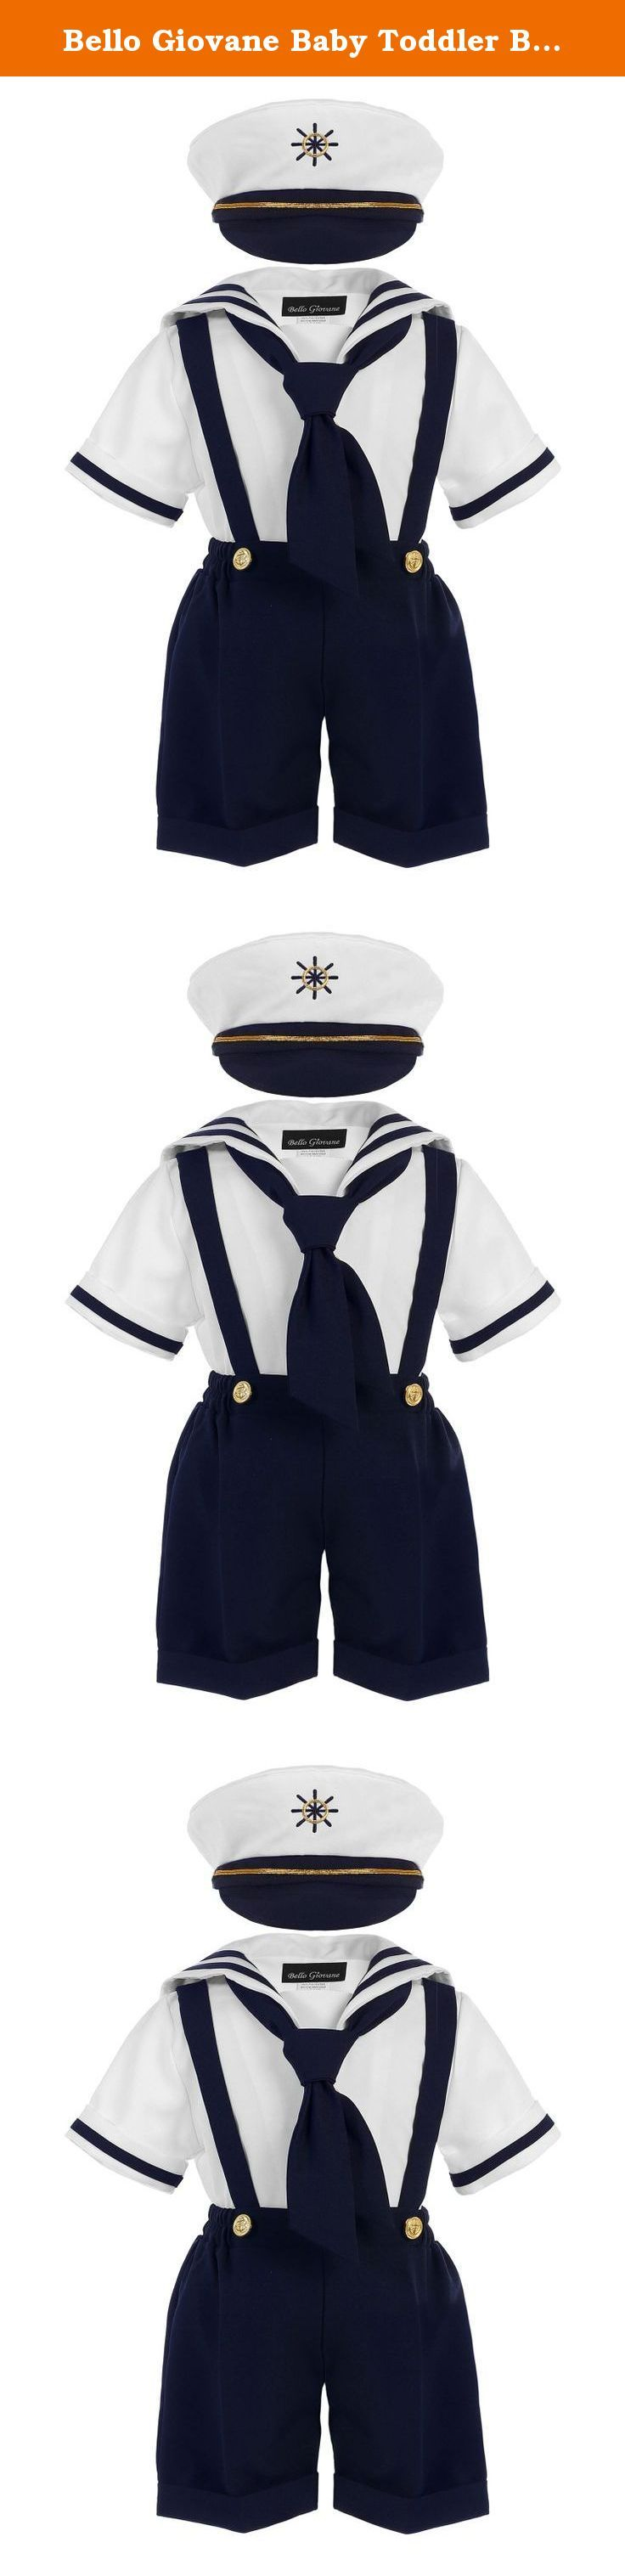 Bello Giovane Baby Toddler Boys Nautical Sailor Outfit Short 4 Piece Set (Small, Navy). Absolutely gorgeous! Your child will be the best of the day whether it is a picture day or simply attending a special event with this classy sailor short suit. This sailor short suit is the perfect choice for the day to be remembered.